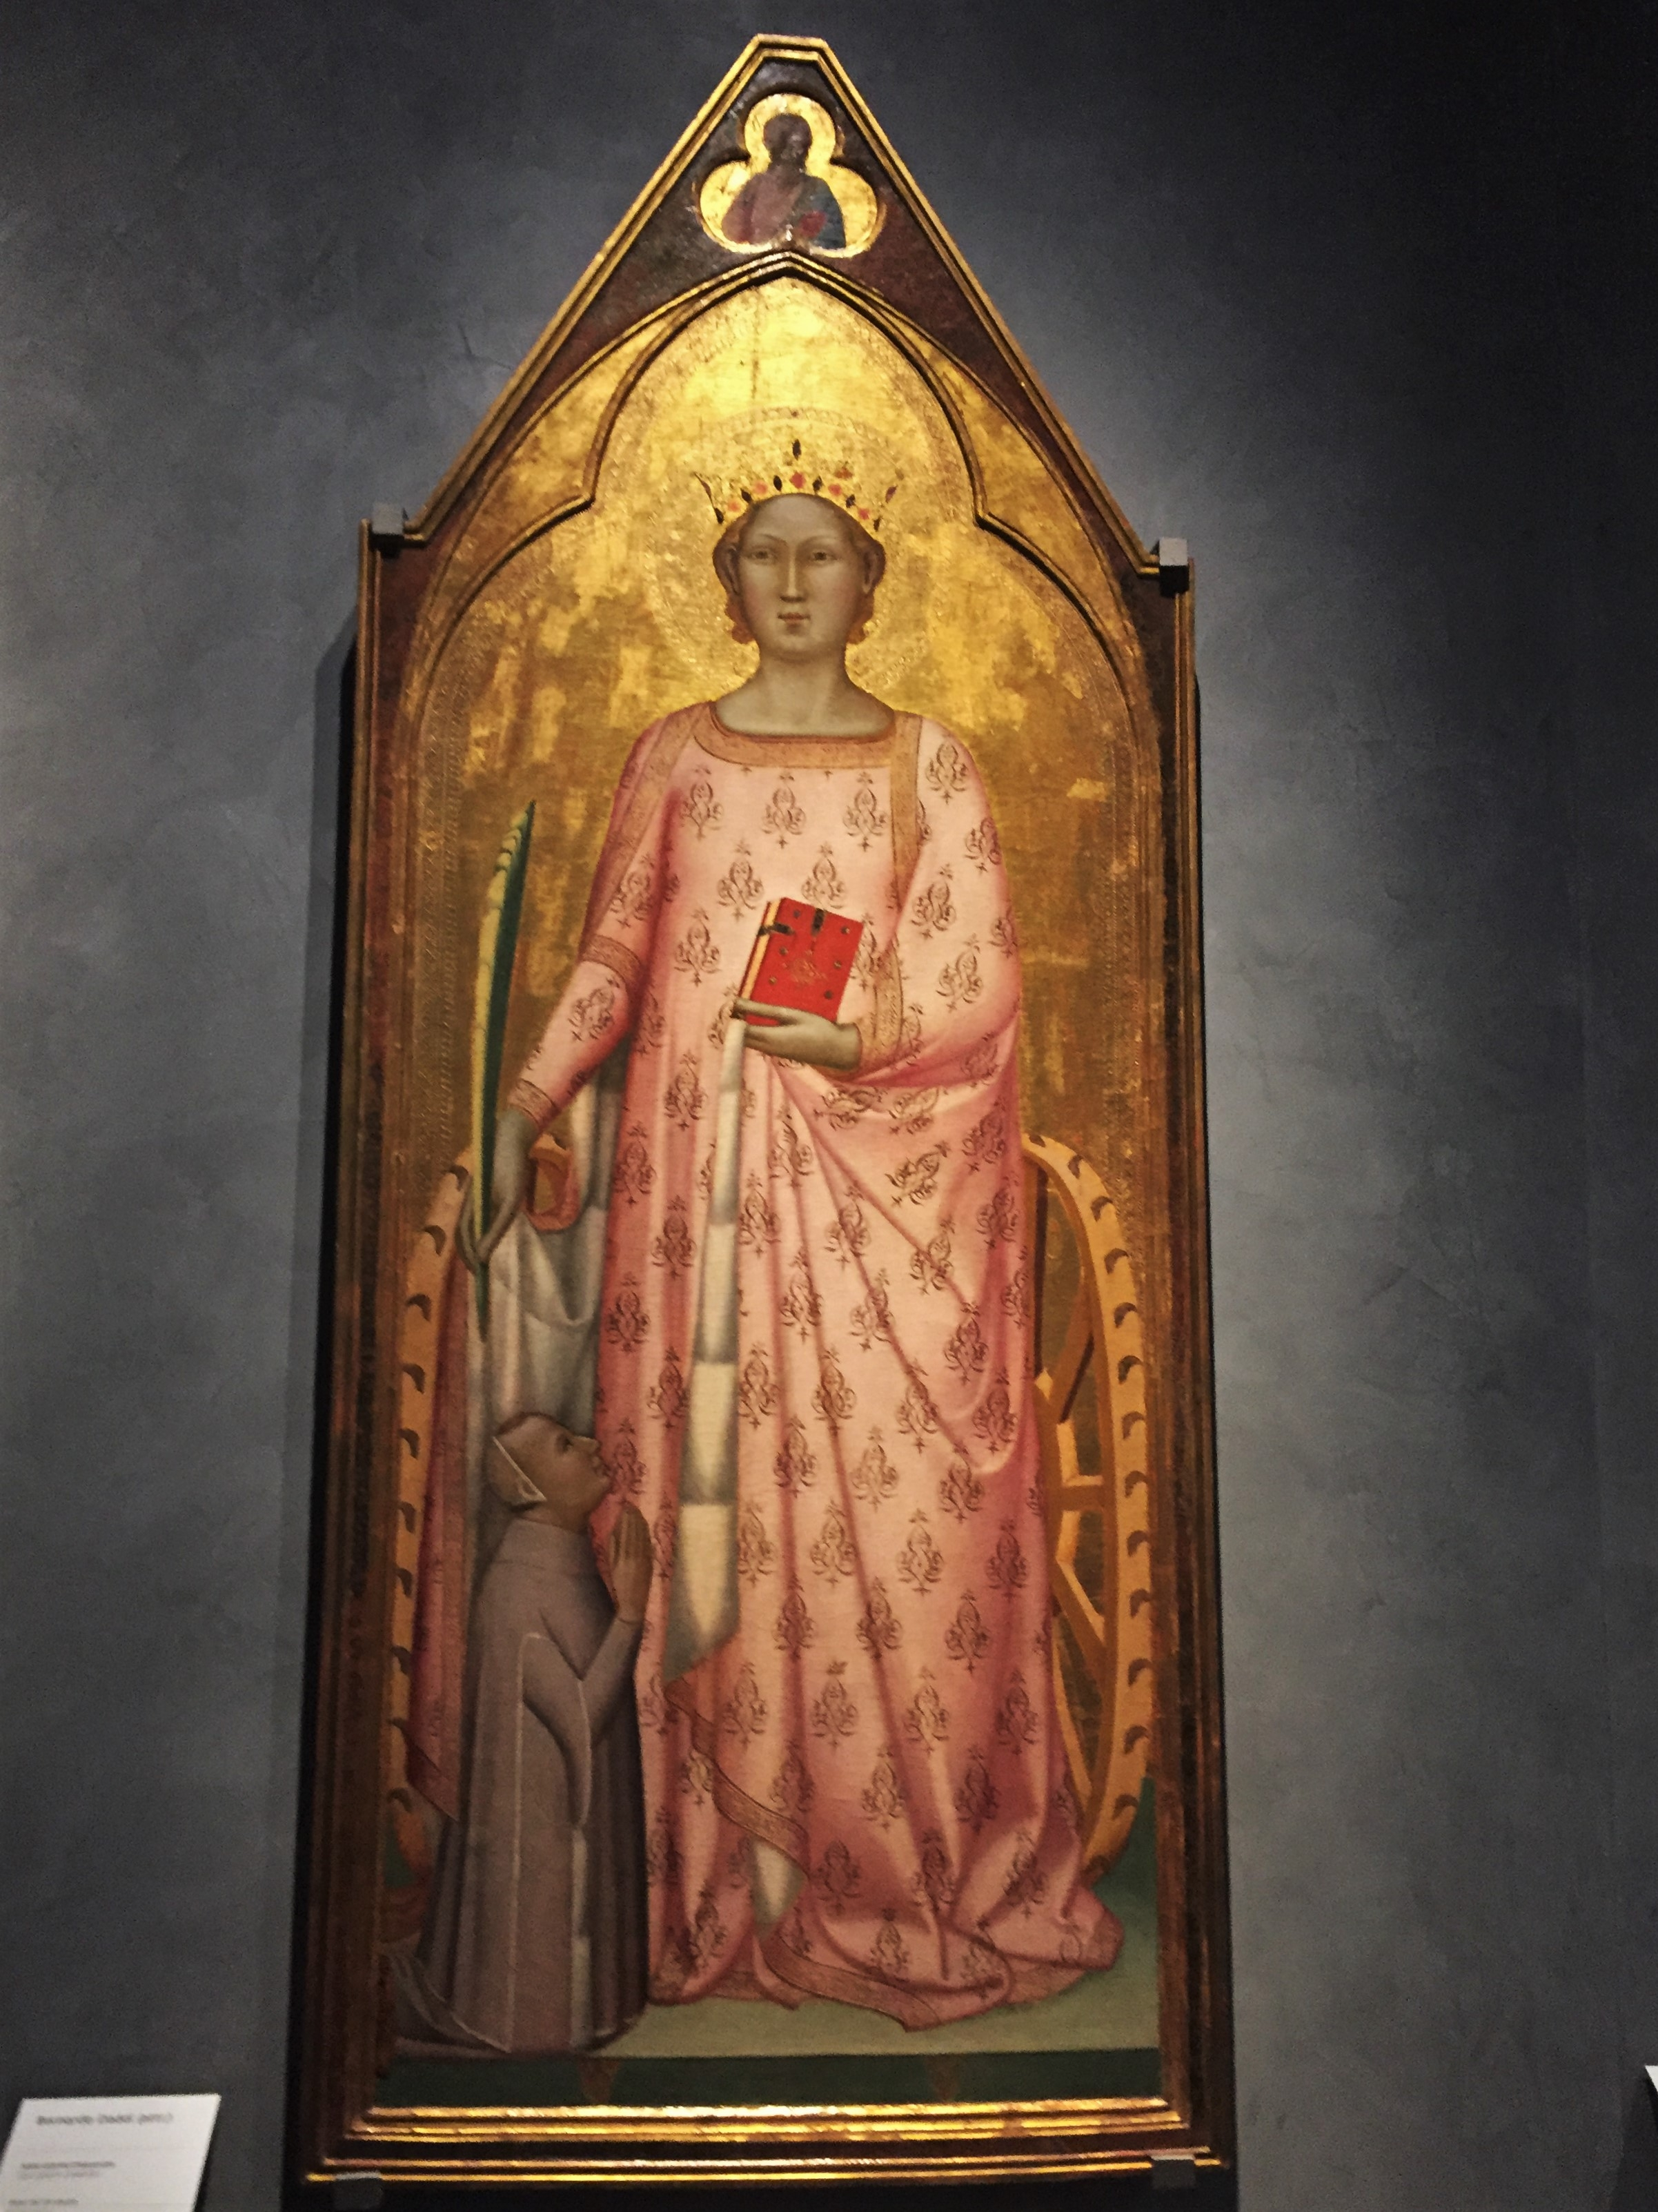 The woman in pink at the Opera Duomo Museum is Saint Catherine of Alexandria, a painting attributed to Bernardo Daddi. Photo credit: M. Ciavardini